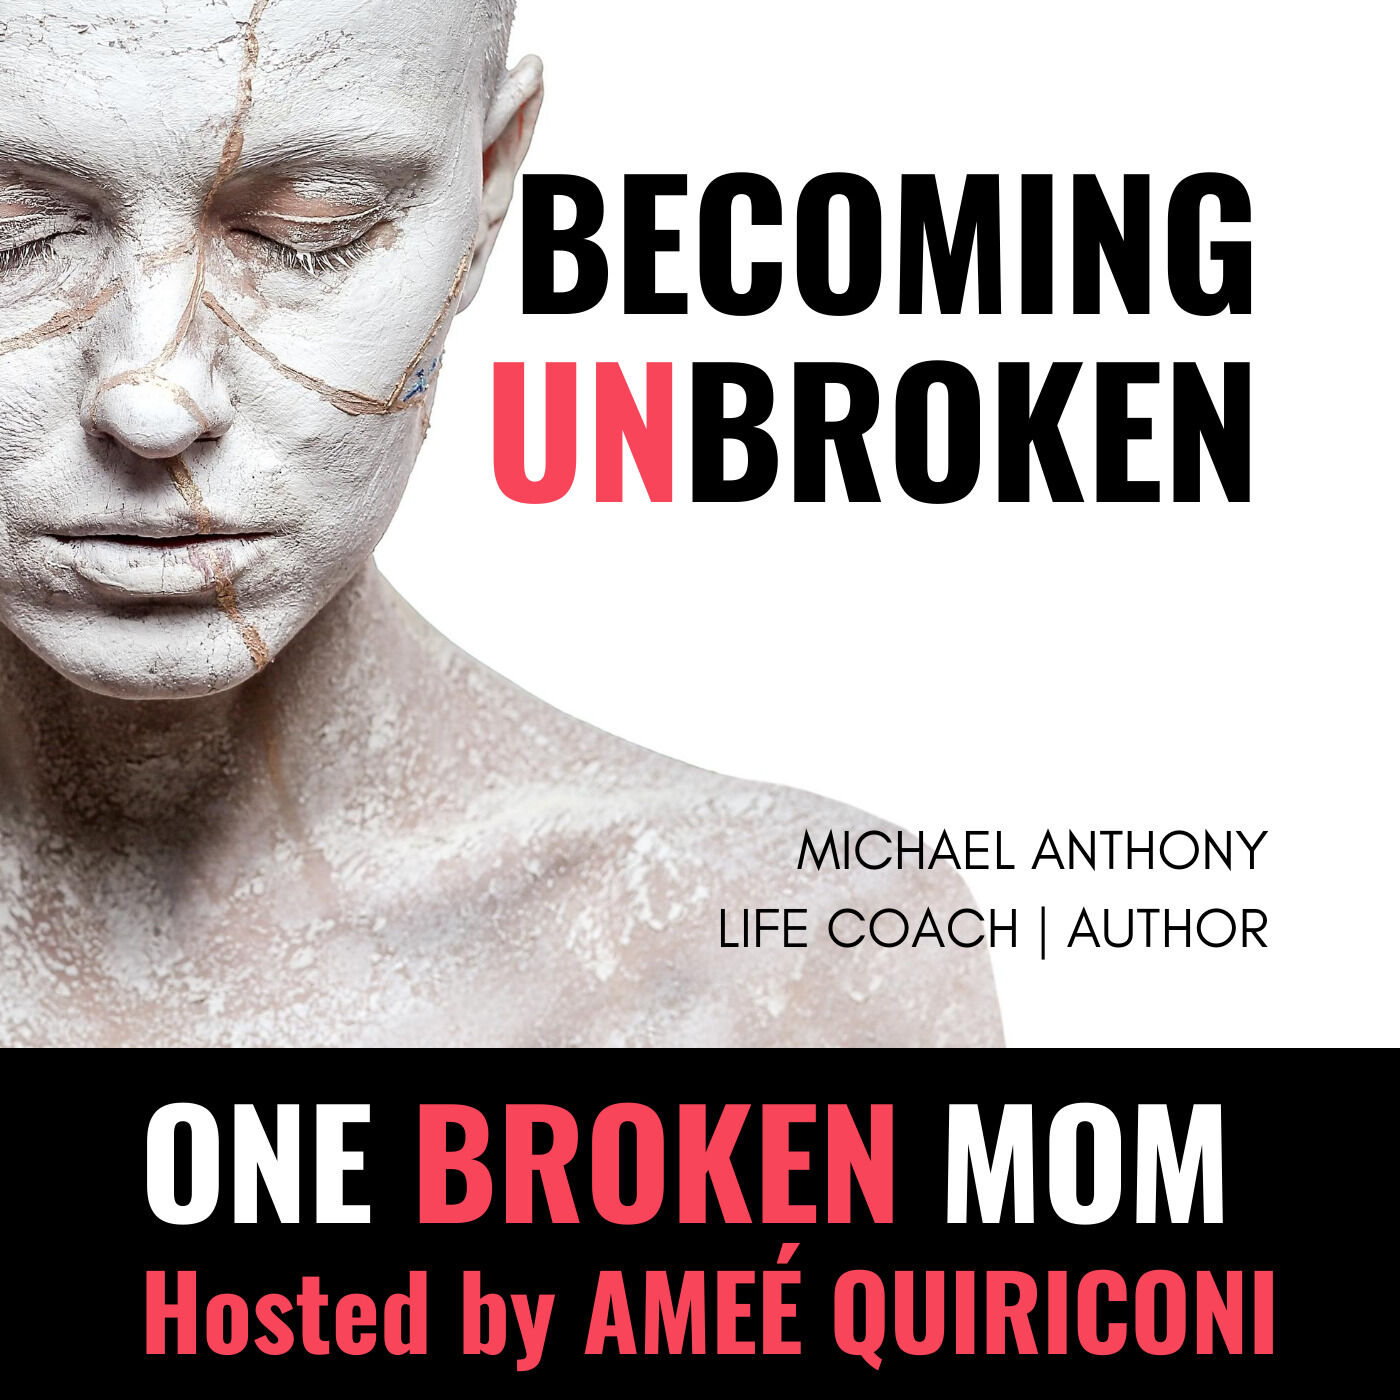 Becoming Unbroken with Michael Anthony